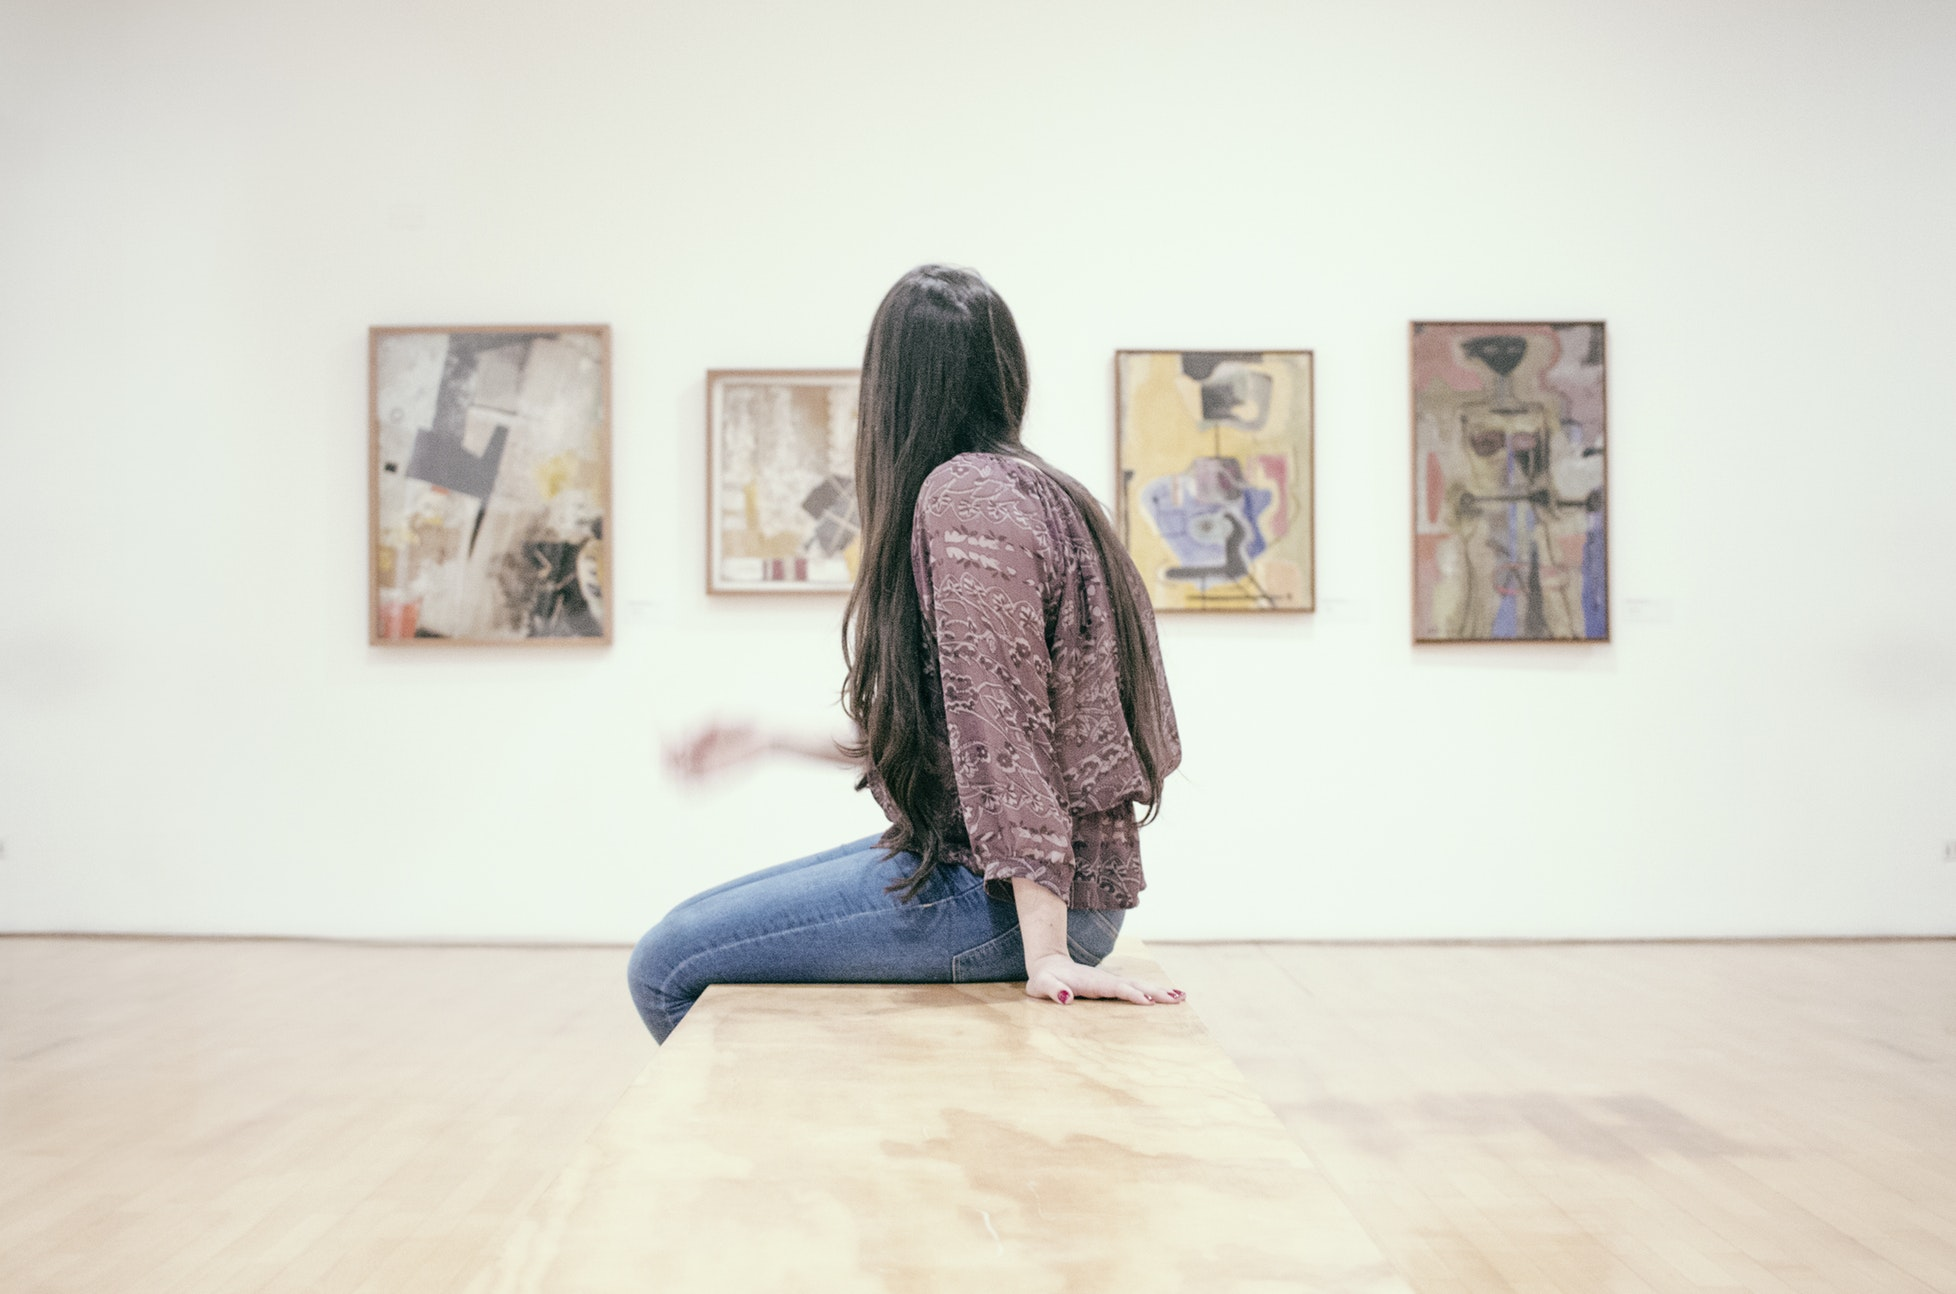 woman sitting on a bench in an art gallery